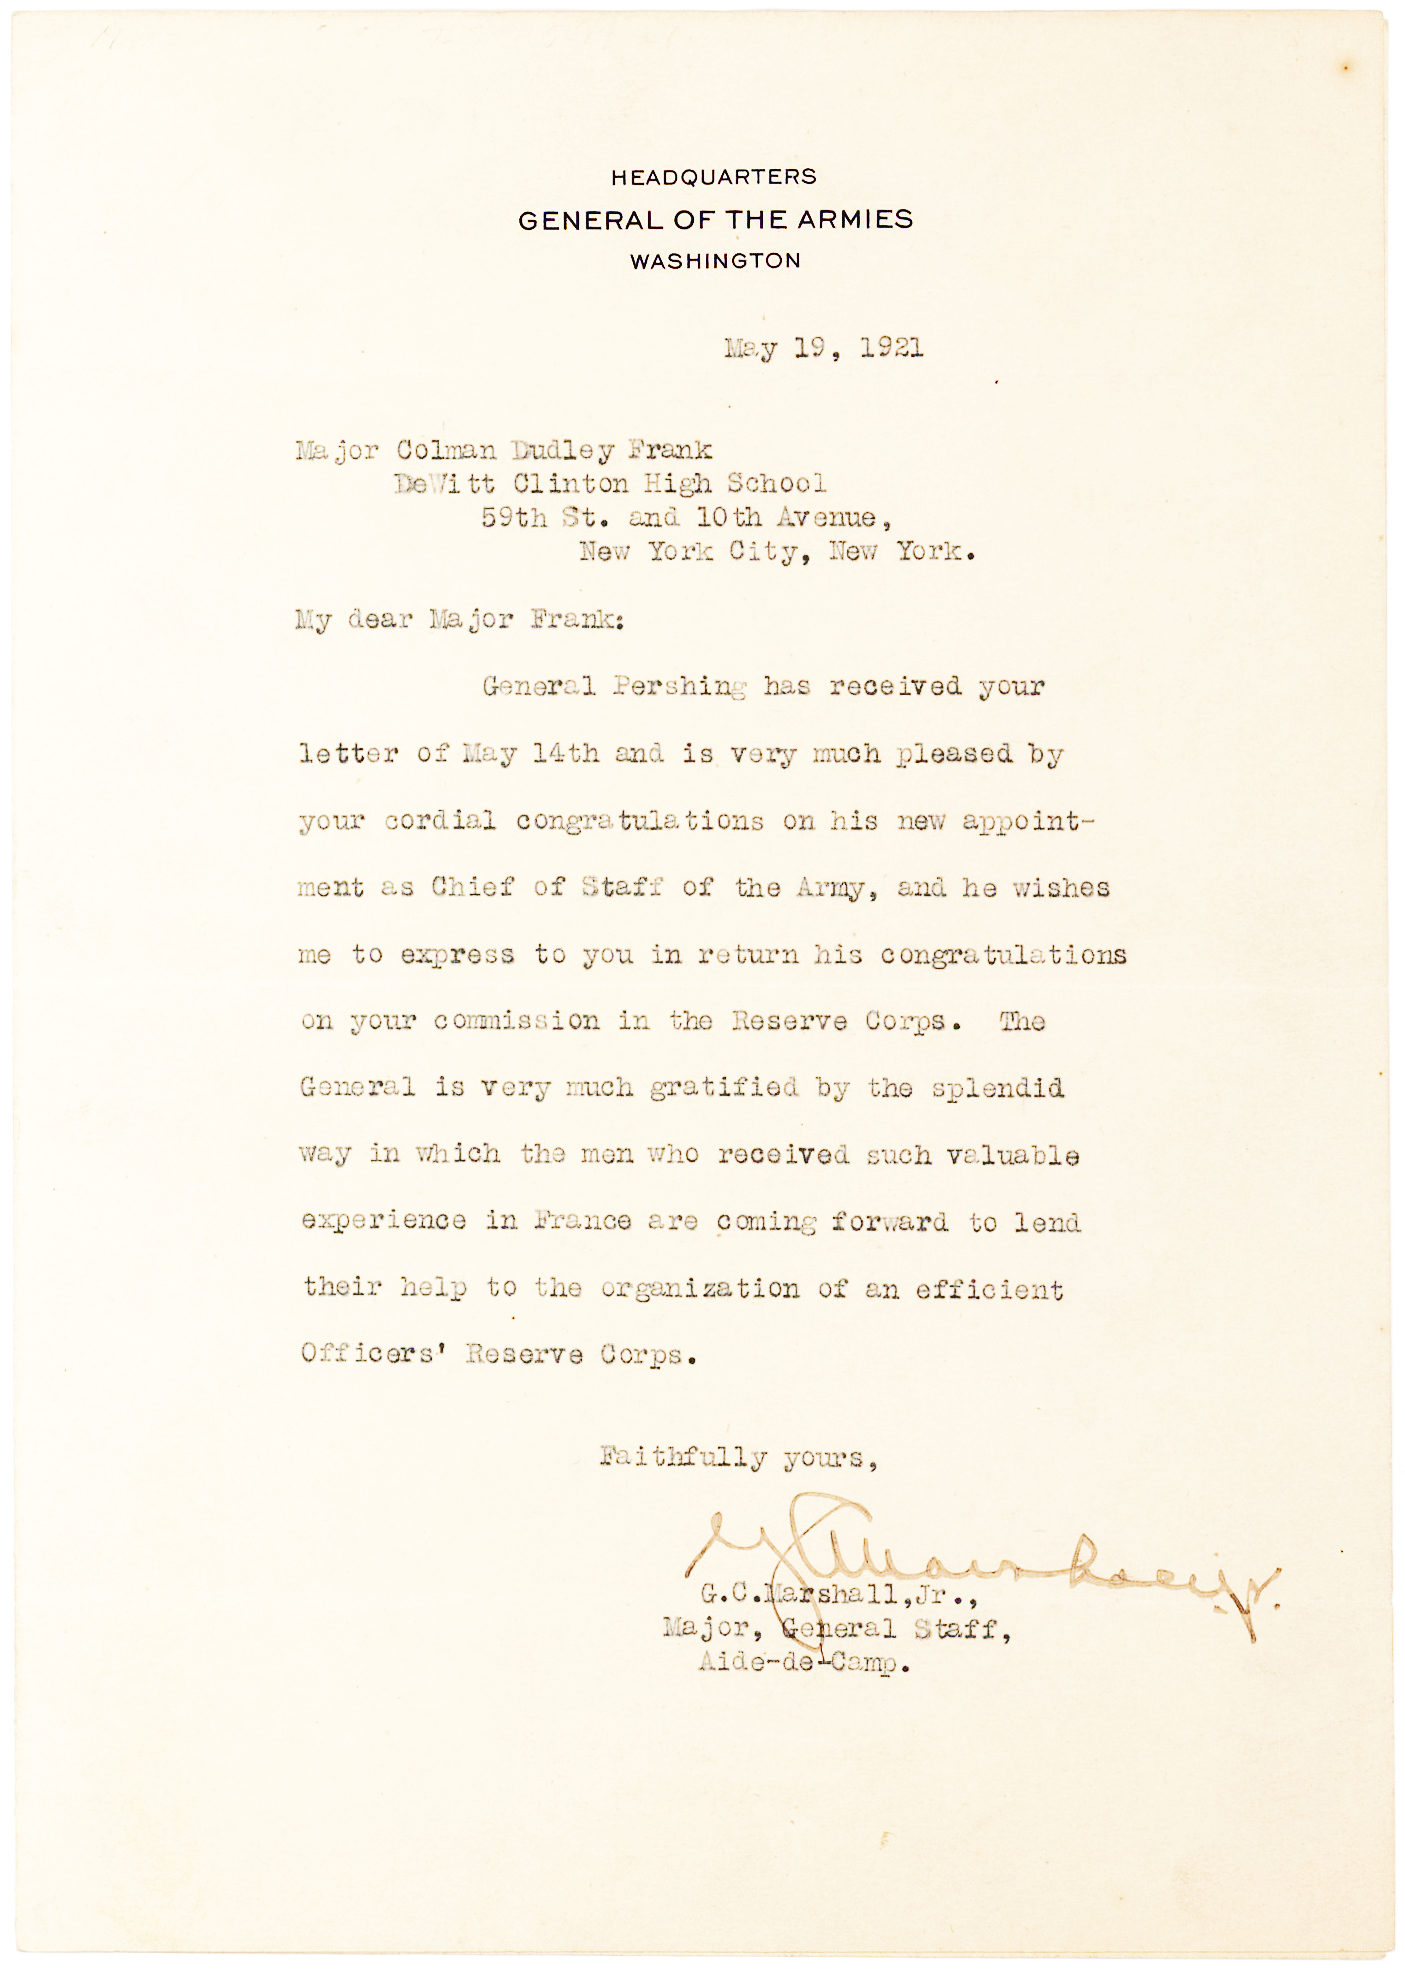 Letter Signed by U.S. Army general, secretary of state, secretary of defense and Nobel Prize Winner George C. Marshall, on letterhead of the Headquarters of the General of the Armies